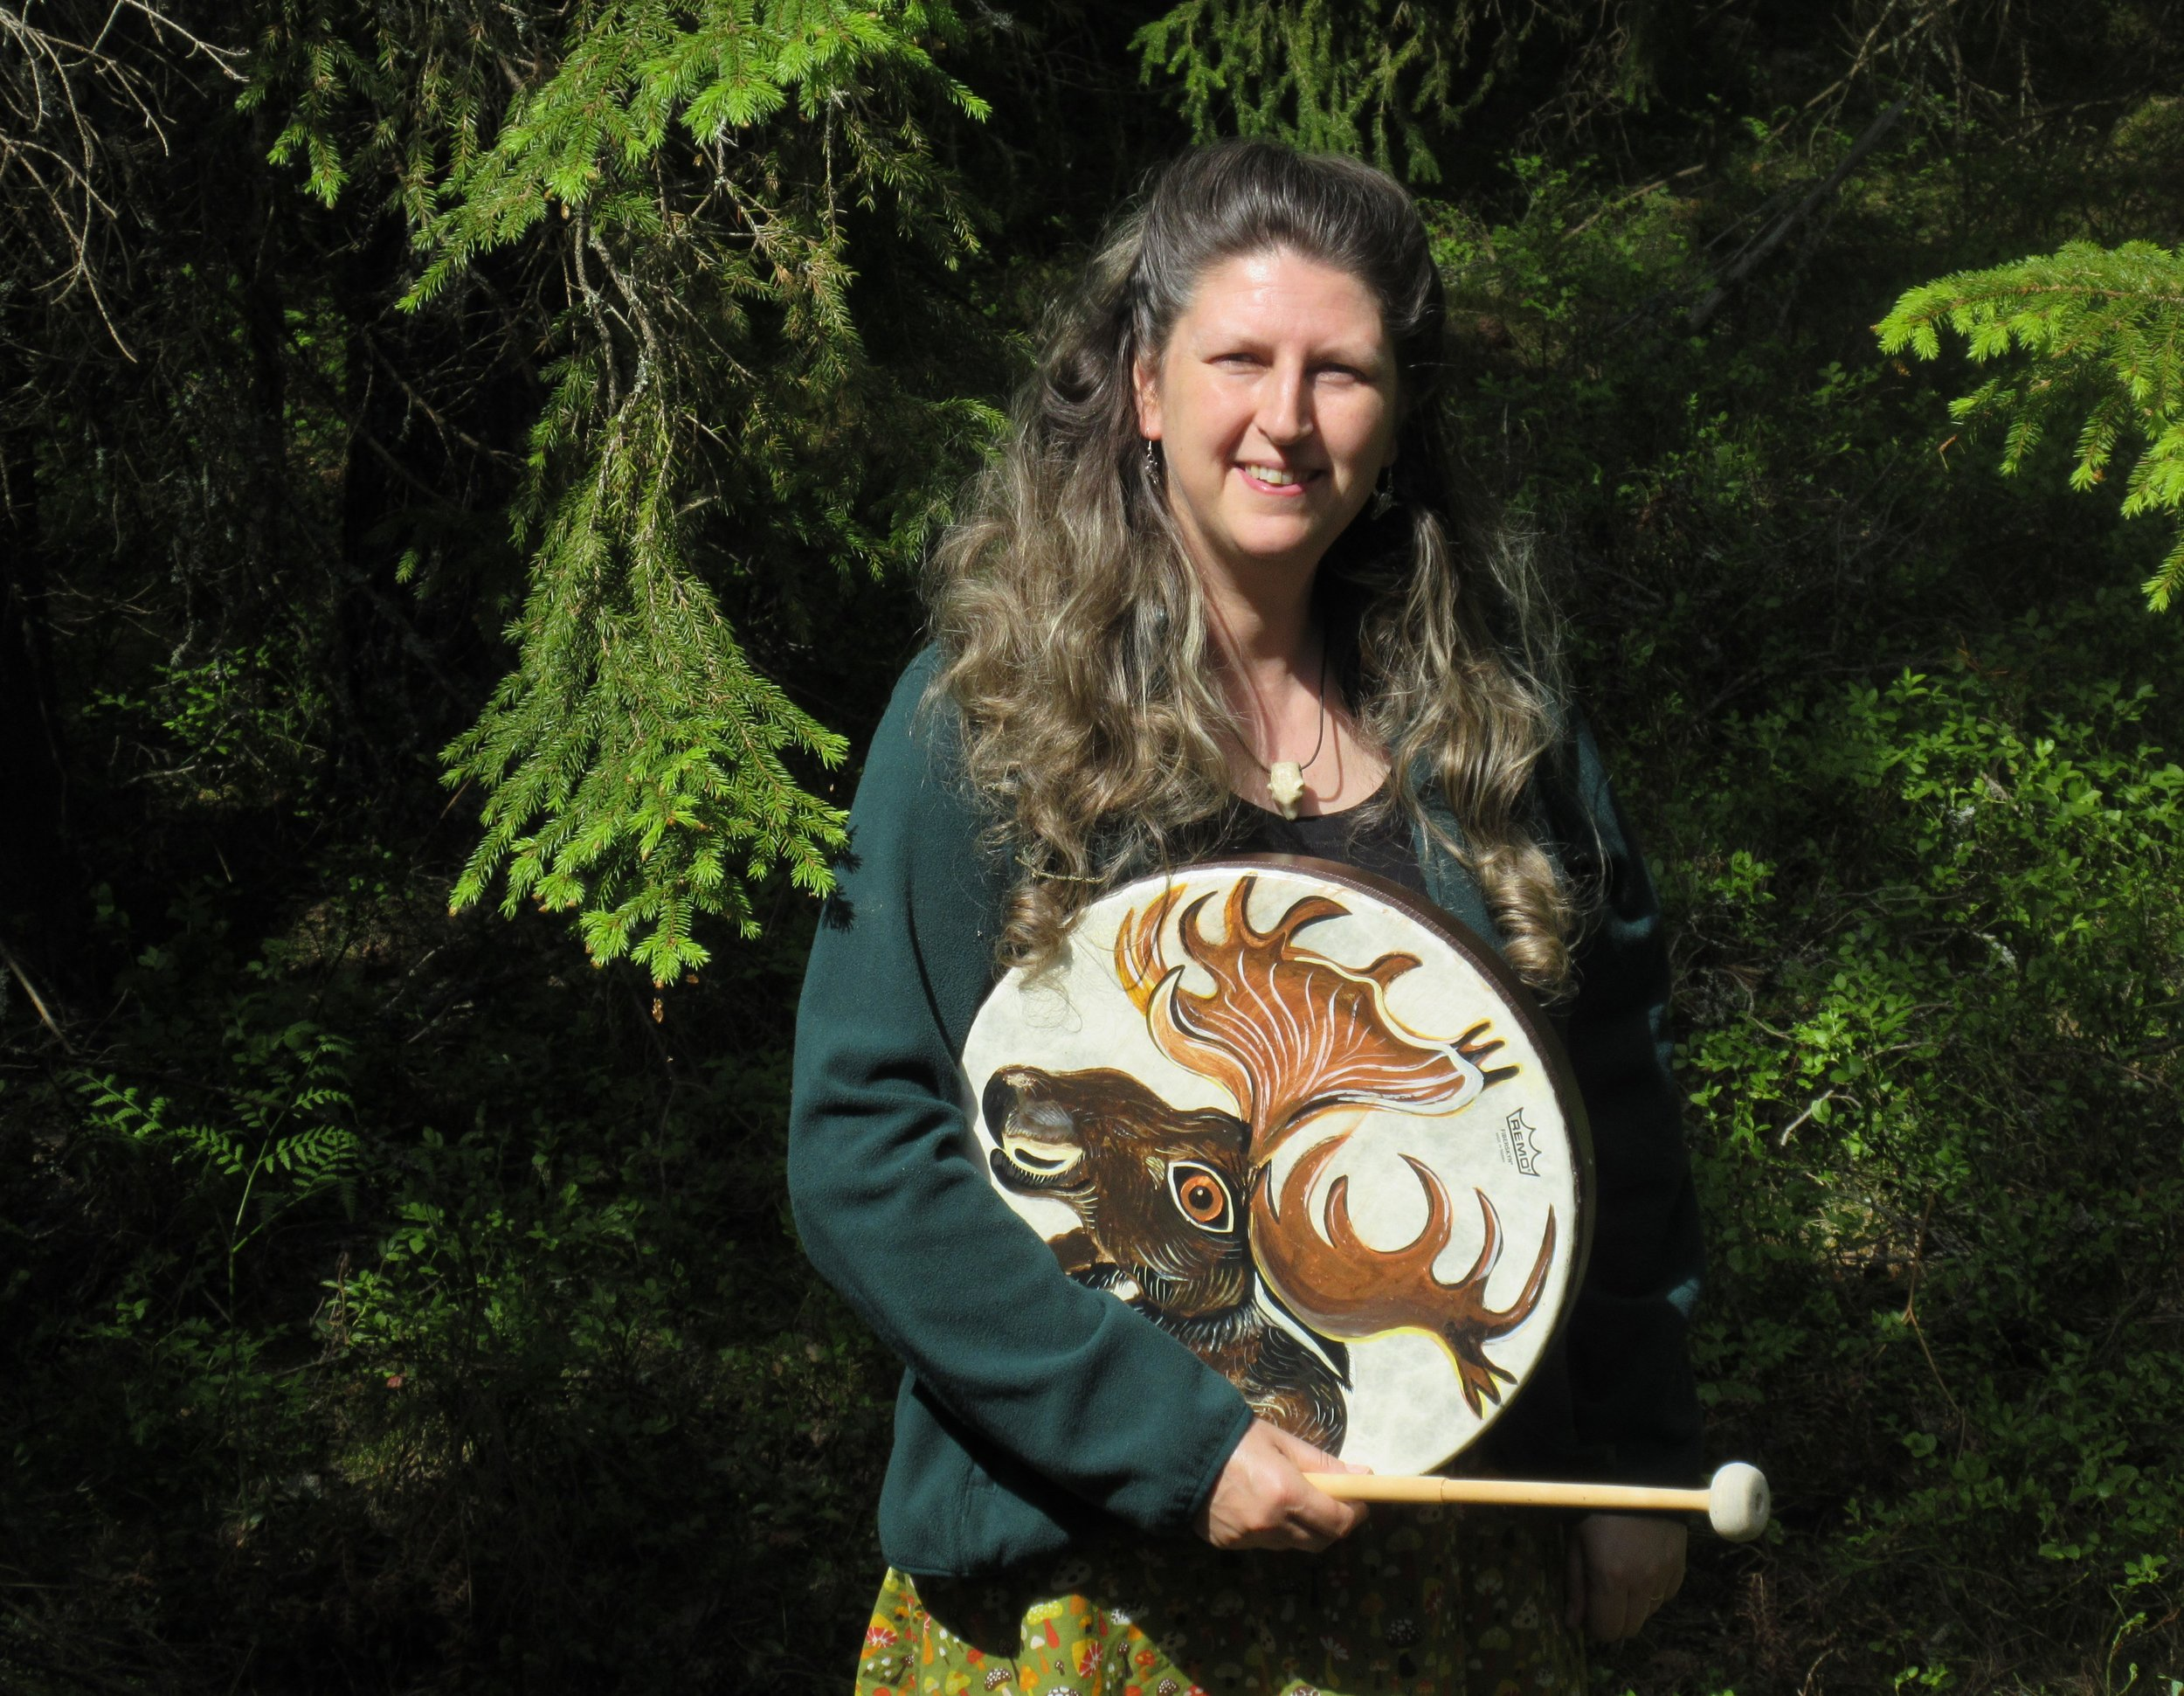 Imelda Almqvist  is an international teacher of shamanism and sacred art.  Her book   Natural Born Shamans: A Spiritual Toolkit For Life -Using Shamanism Creatively with Young People of All Ages  was published by Moon Books in 2016.